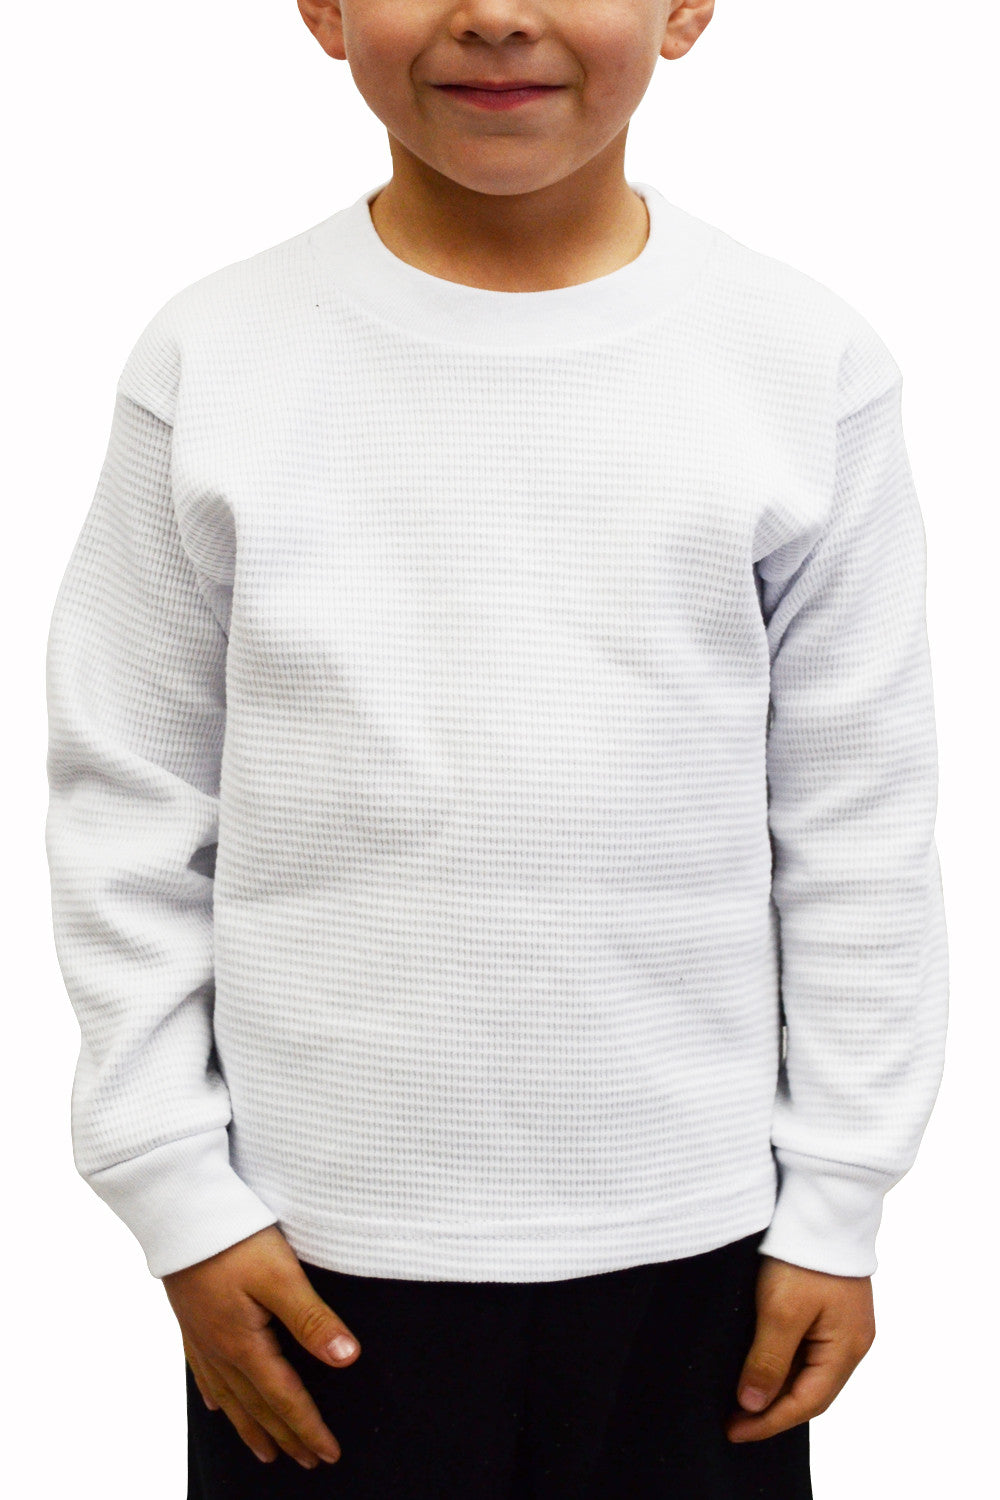 Kids Thermal Knit Tops - Pro 5 Apparel